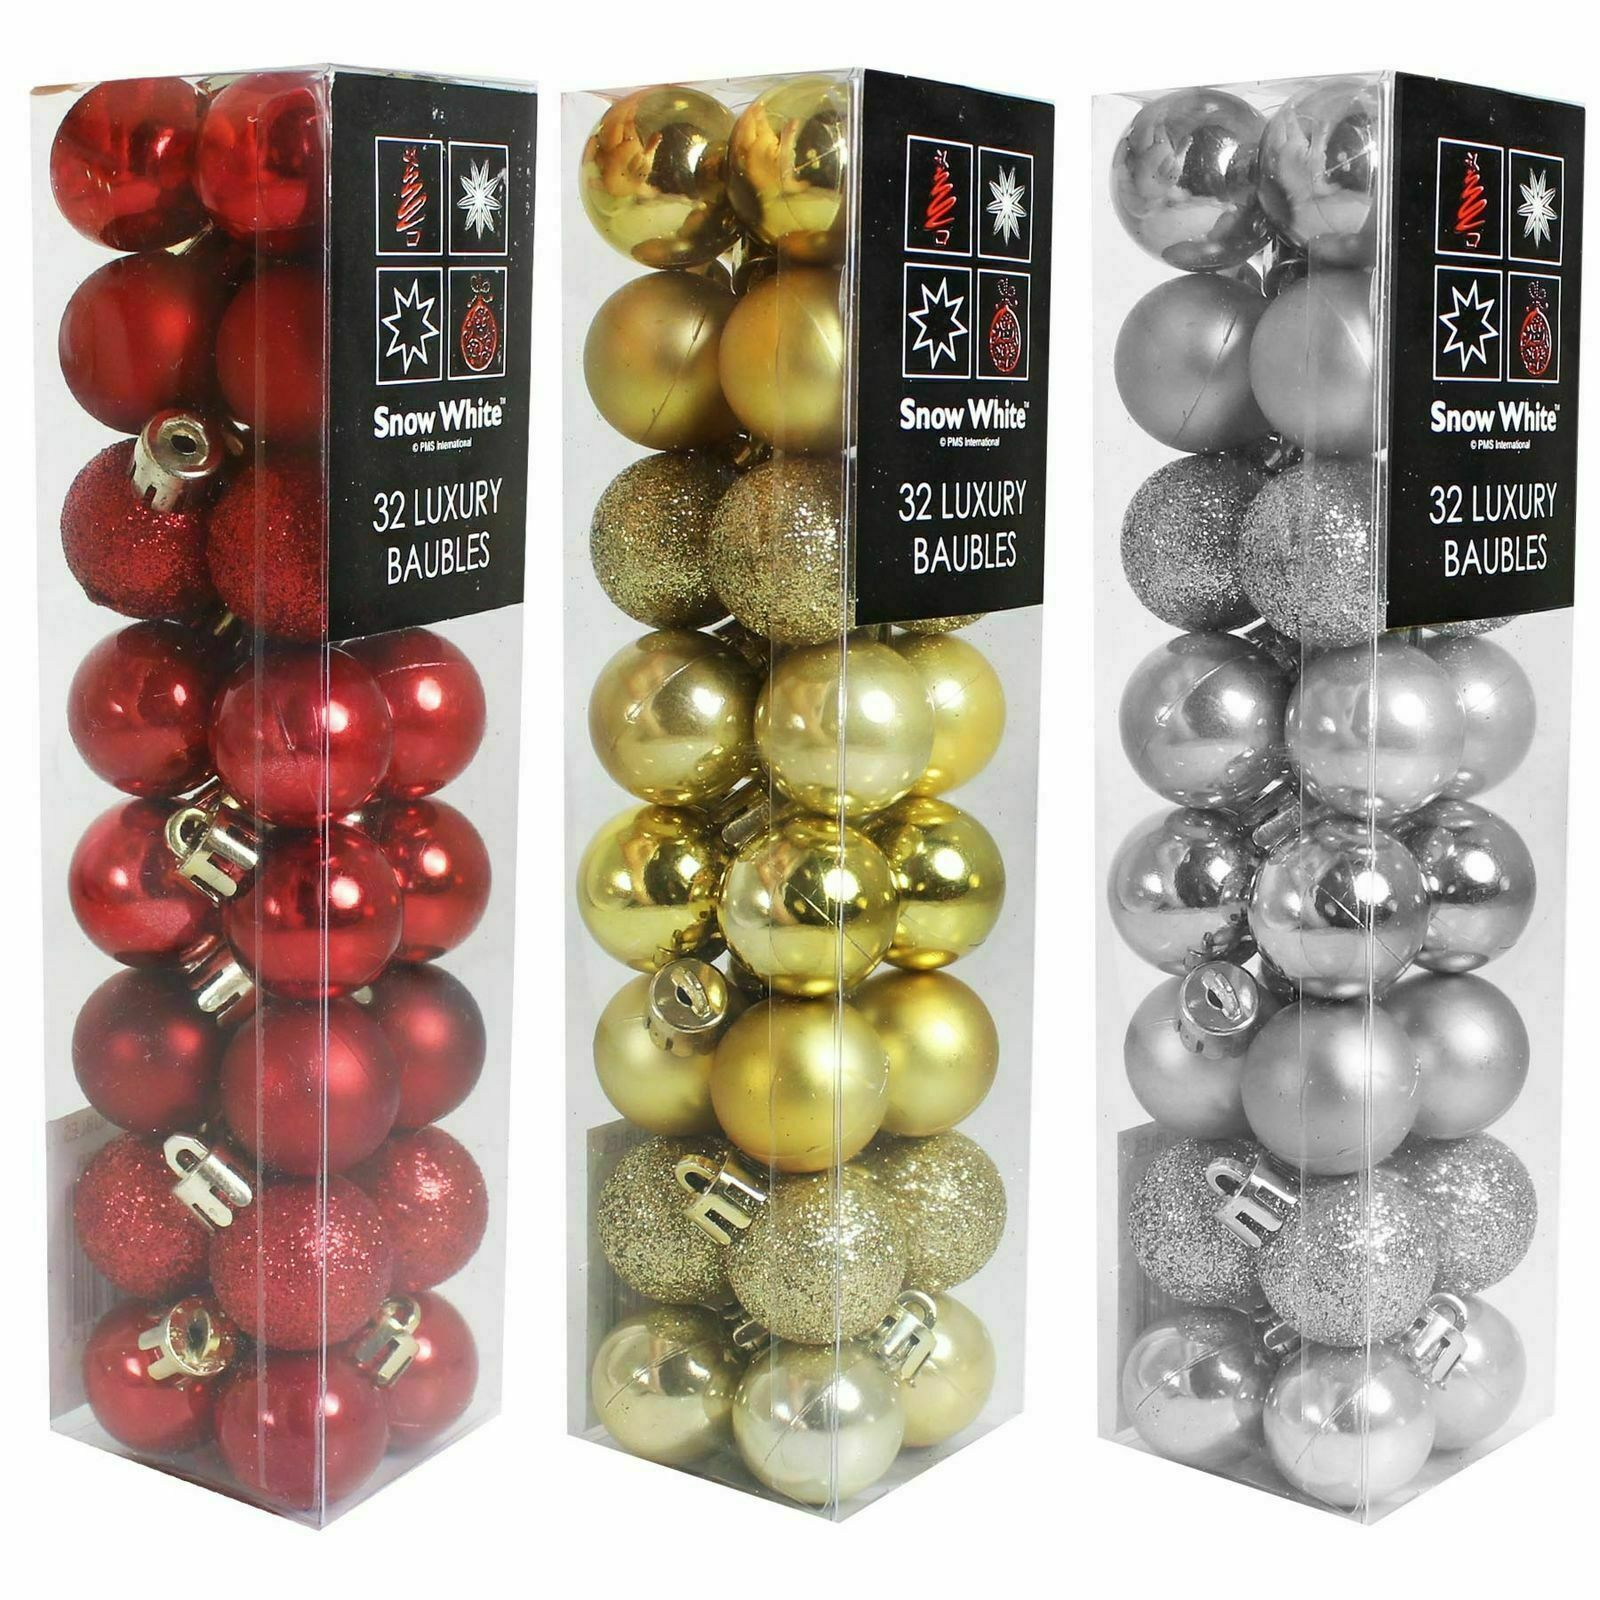 96 Christmas Tree Baubles Shatter Proof Glitter Xmas Decorations RED GOLD SILVER